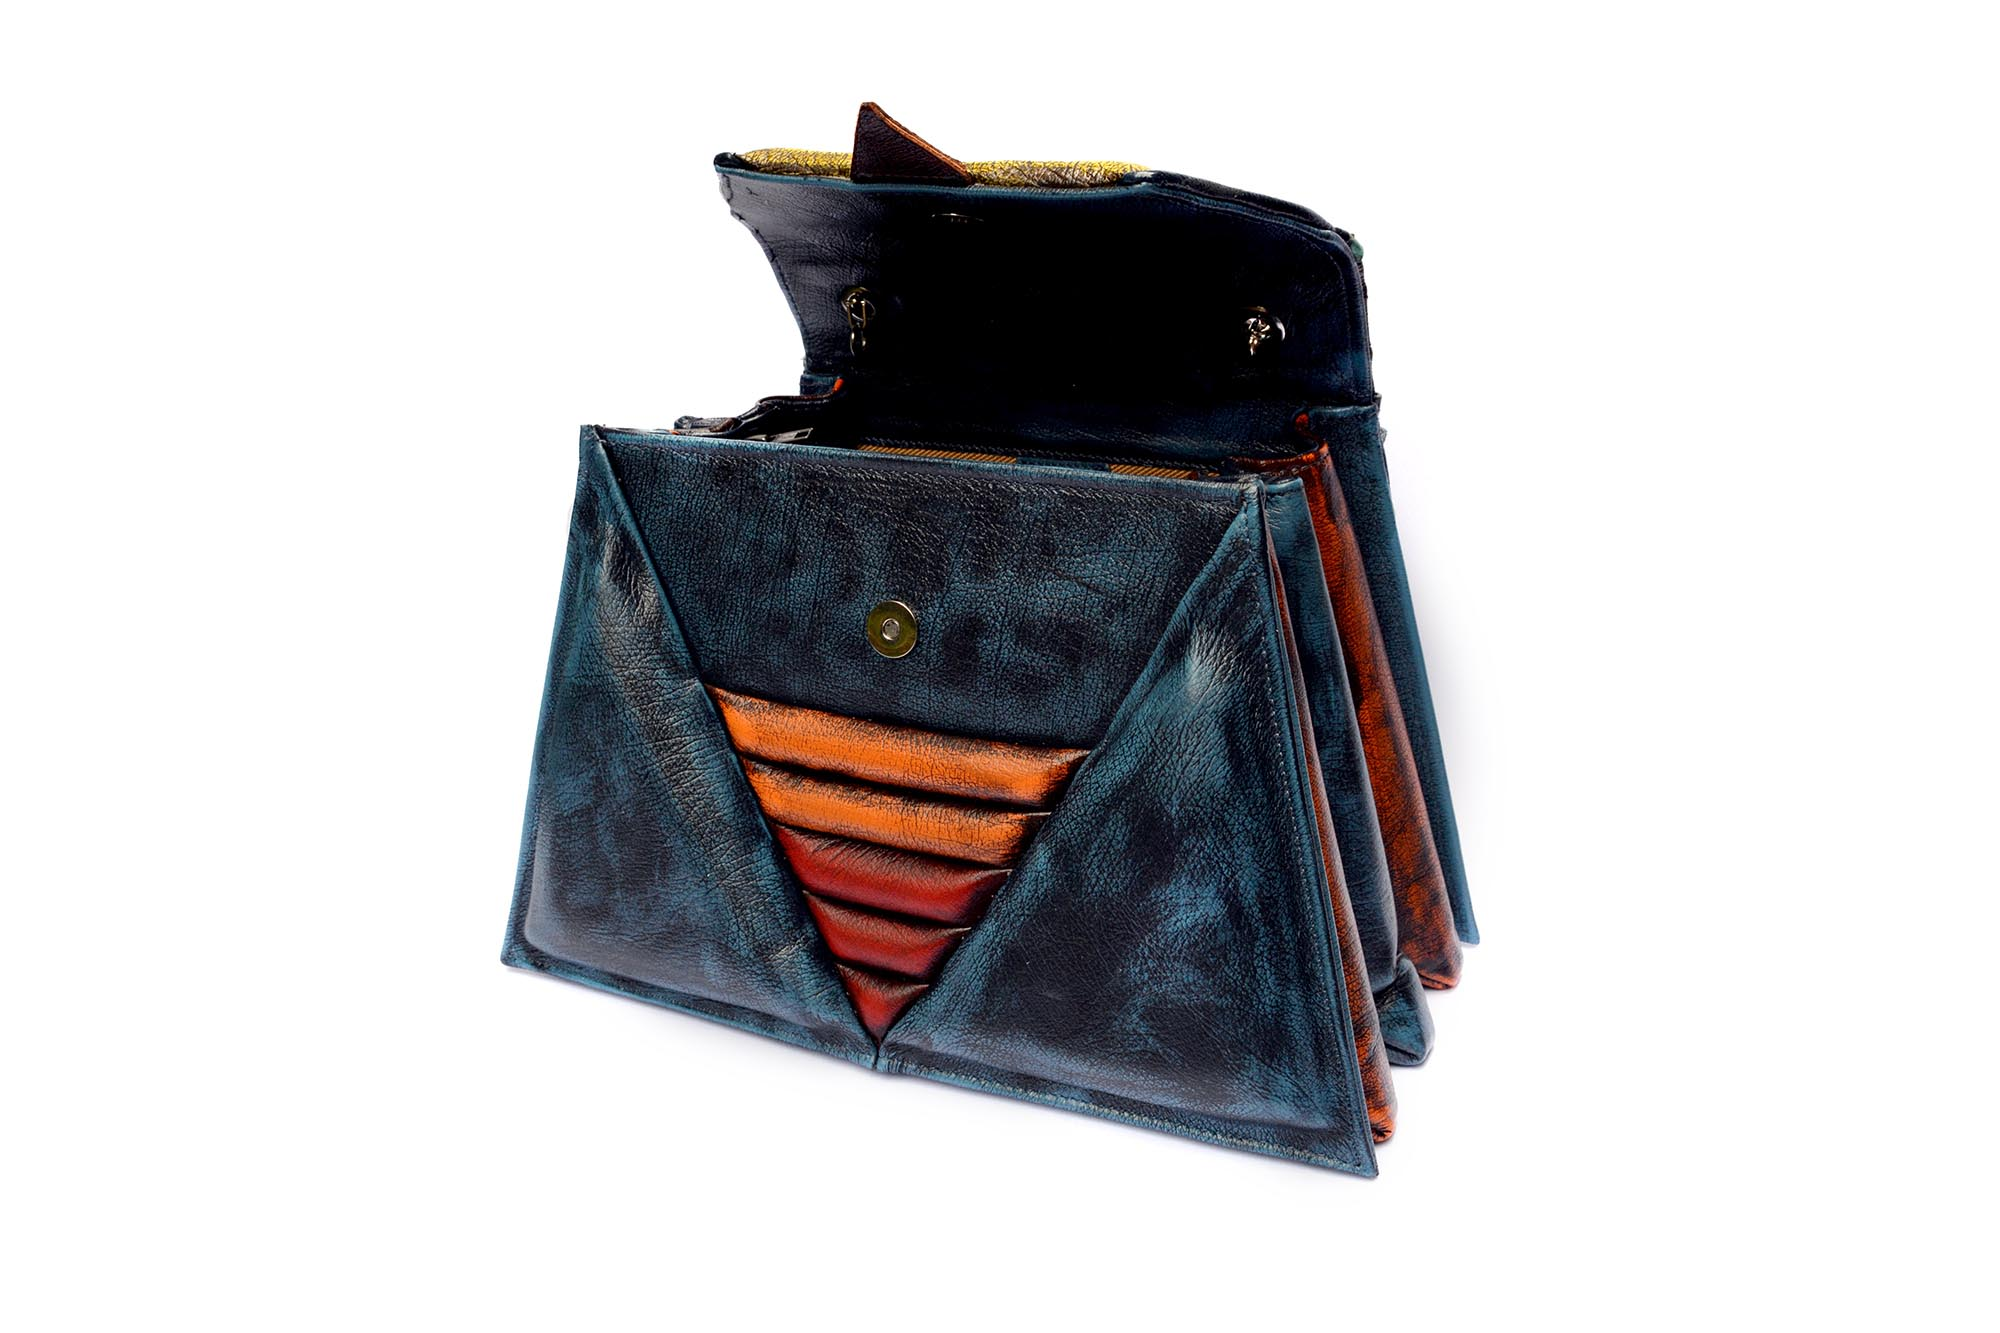 harleq-luxury-bag-triangles-vintage-leathers